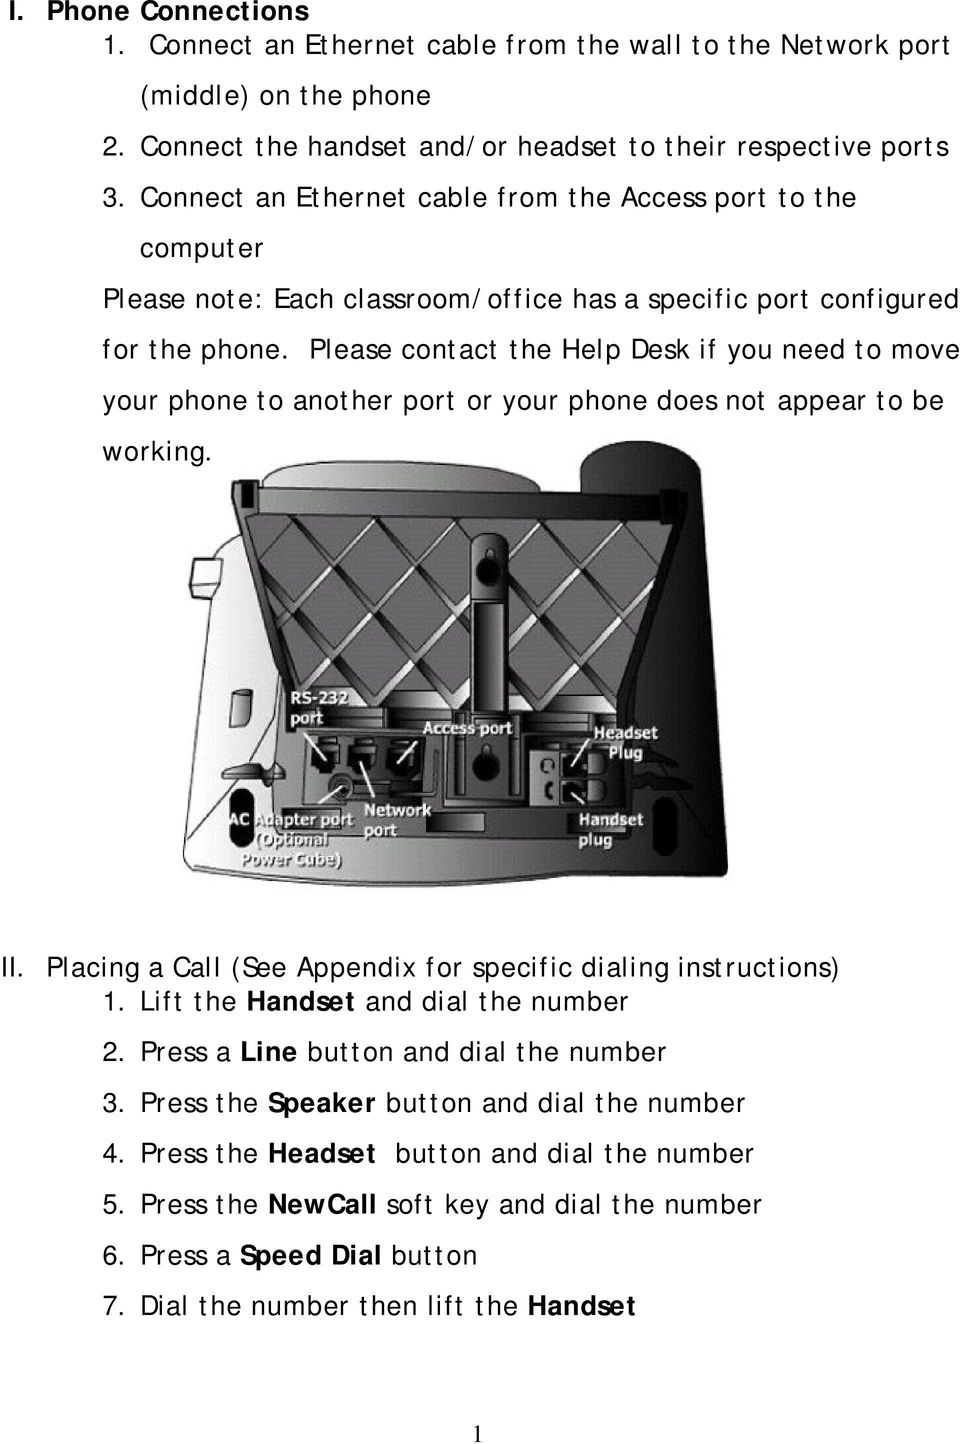 Please contact the Help Desk if you need to move your phone to another port or your phone does not appear to be working. II. Placing a Call (See Appendix for specific dialing instructions) 1.